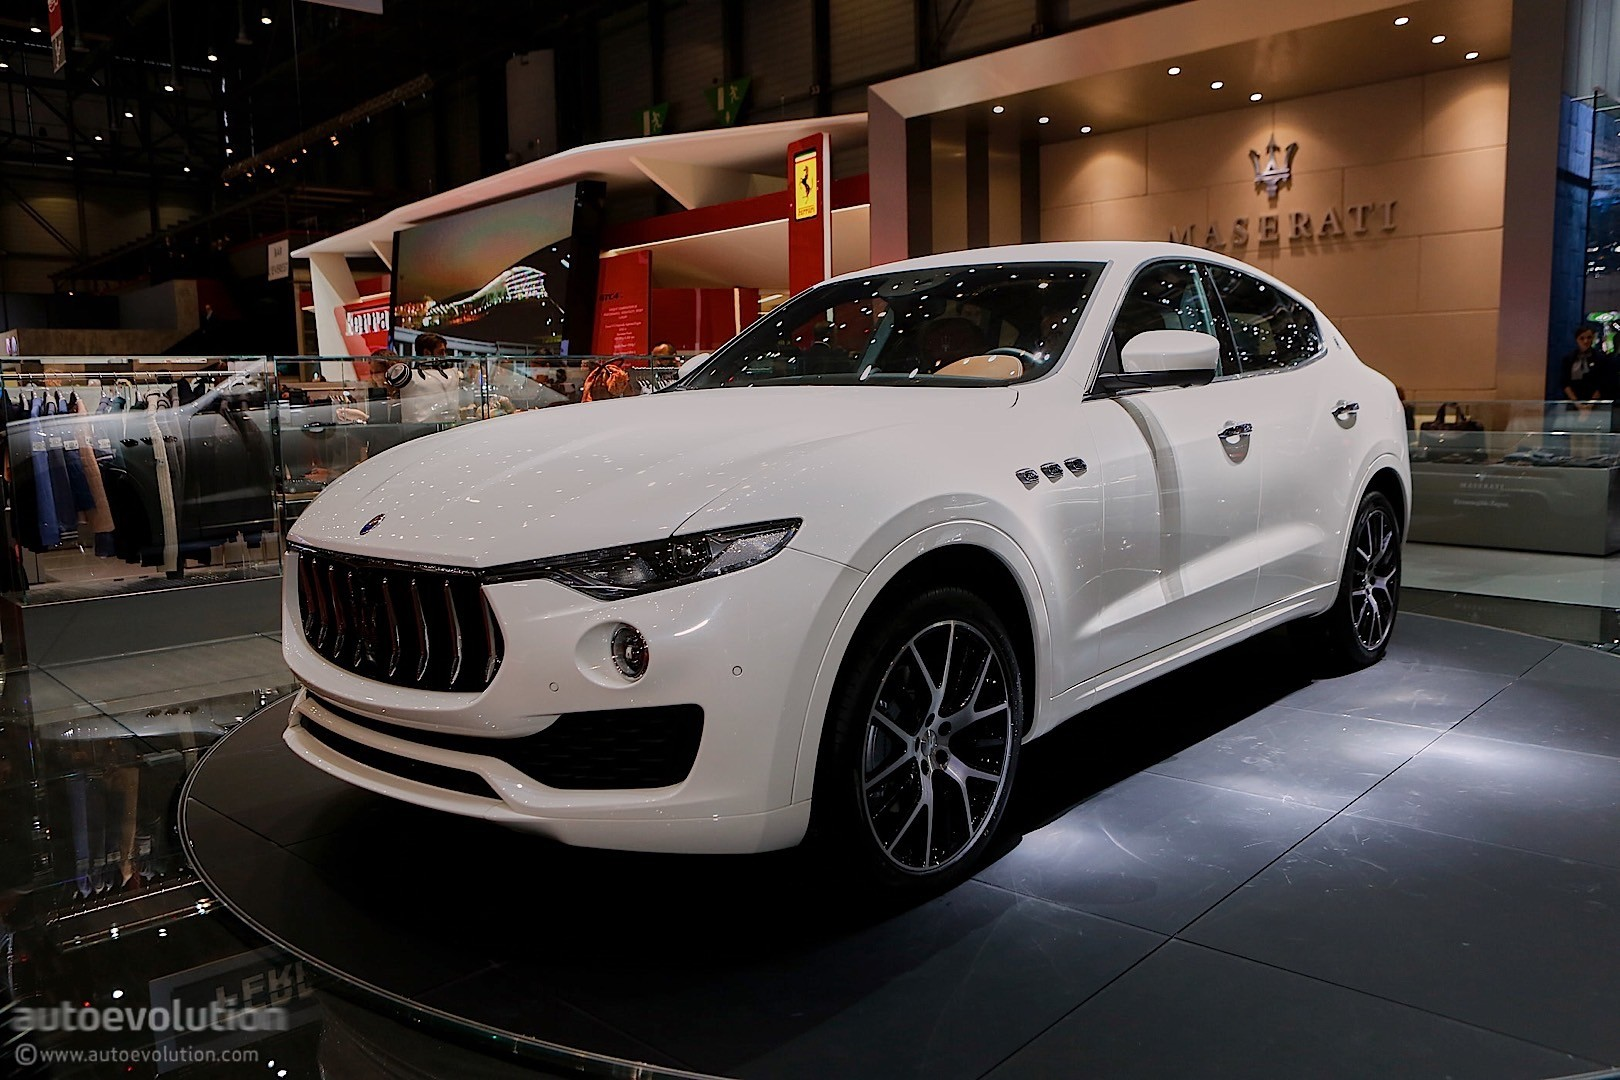 2017 maserati levante us pricing announced it 39 s coming to new york autoevolution. Black Bedroom Furniture Sets. Home Design Ideas